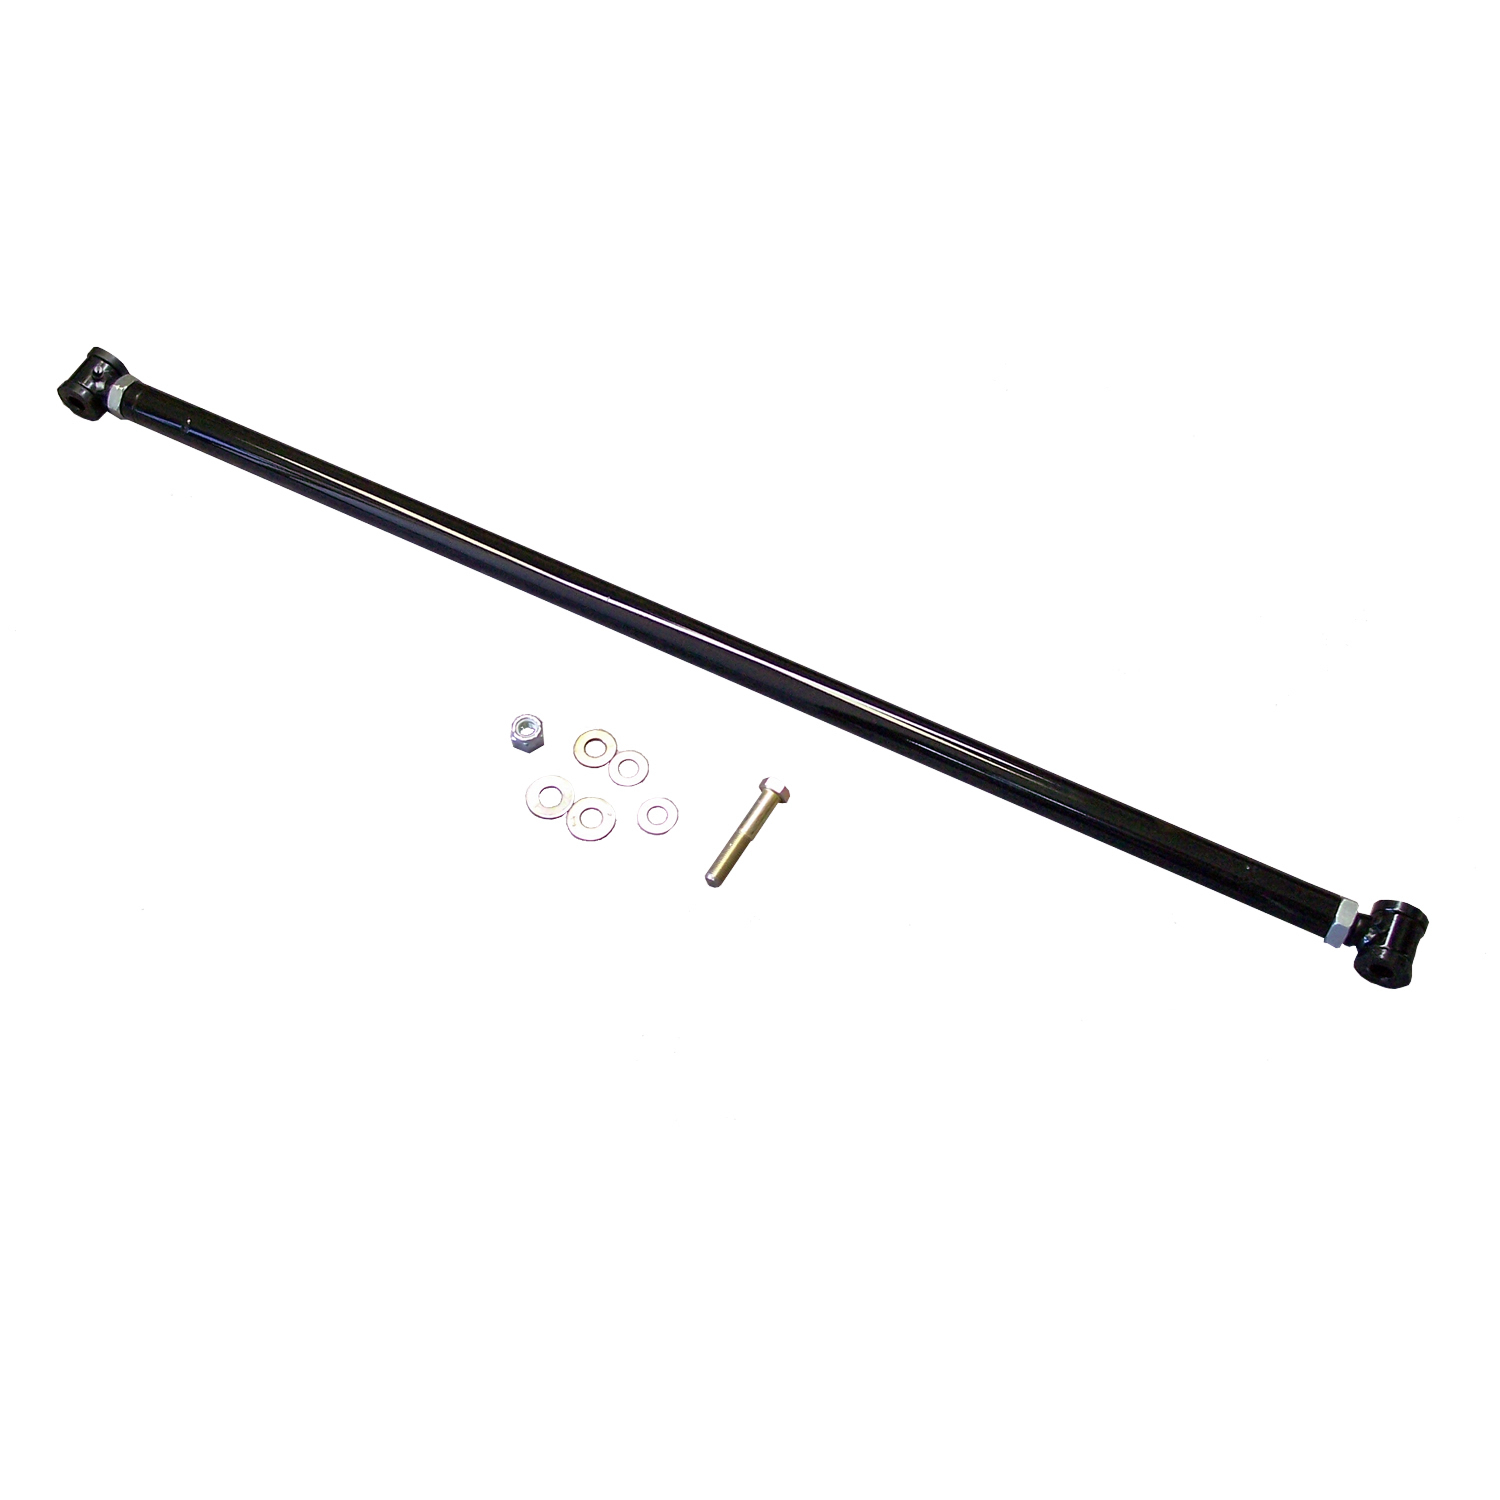 58-64 Chevrolet B-Body Panhard Rod from Hotchkis Sport Suspension